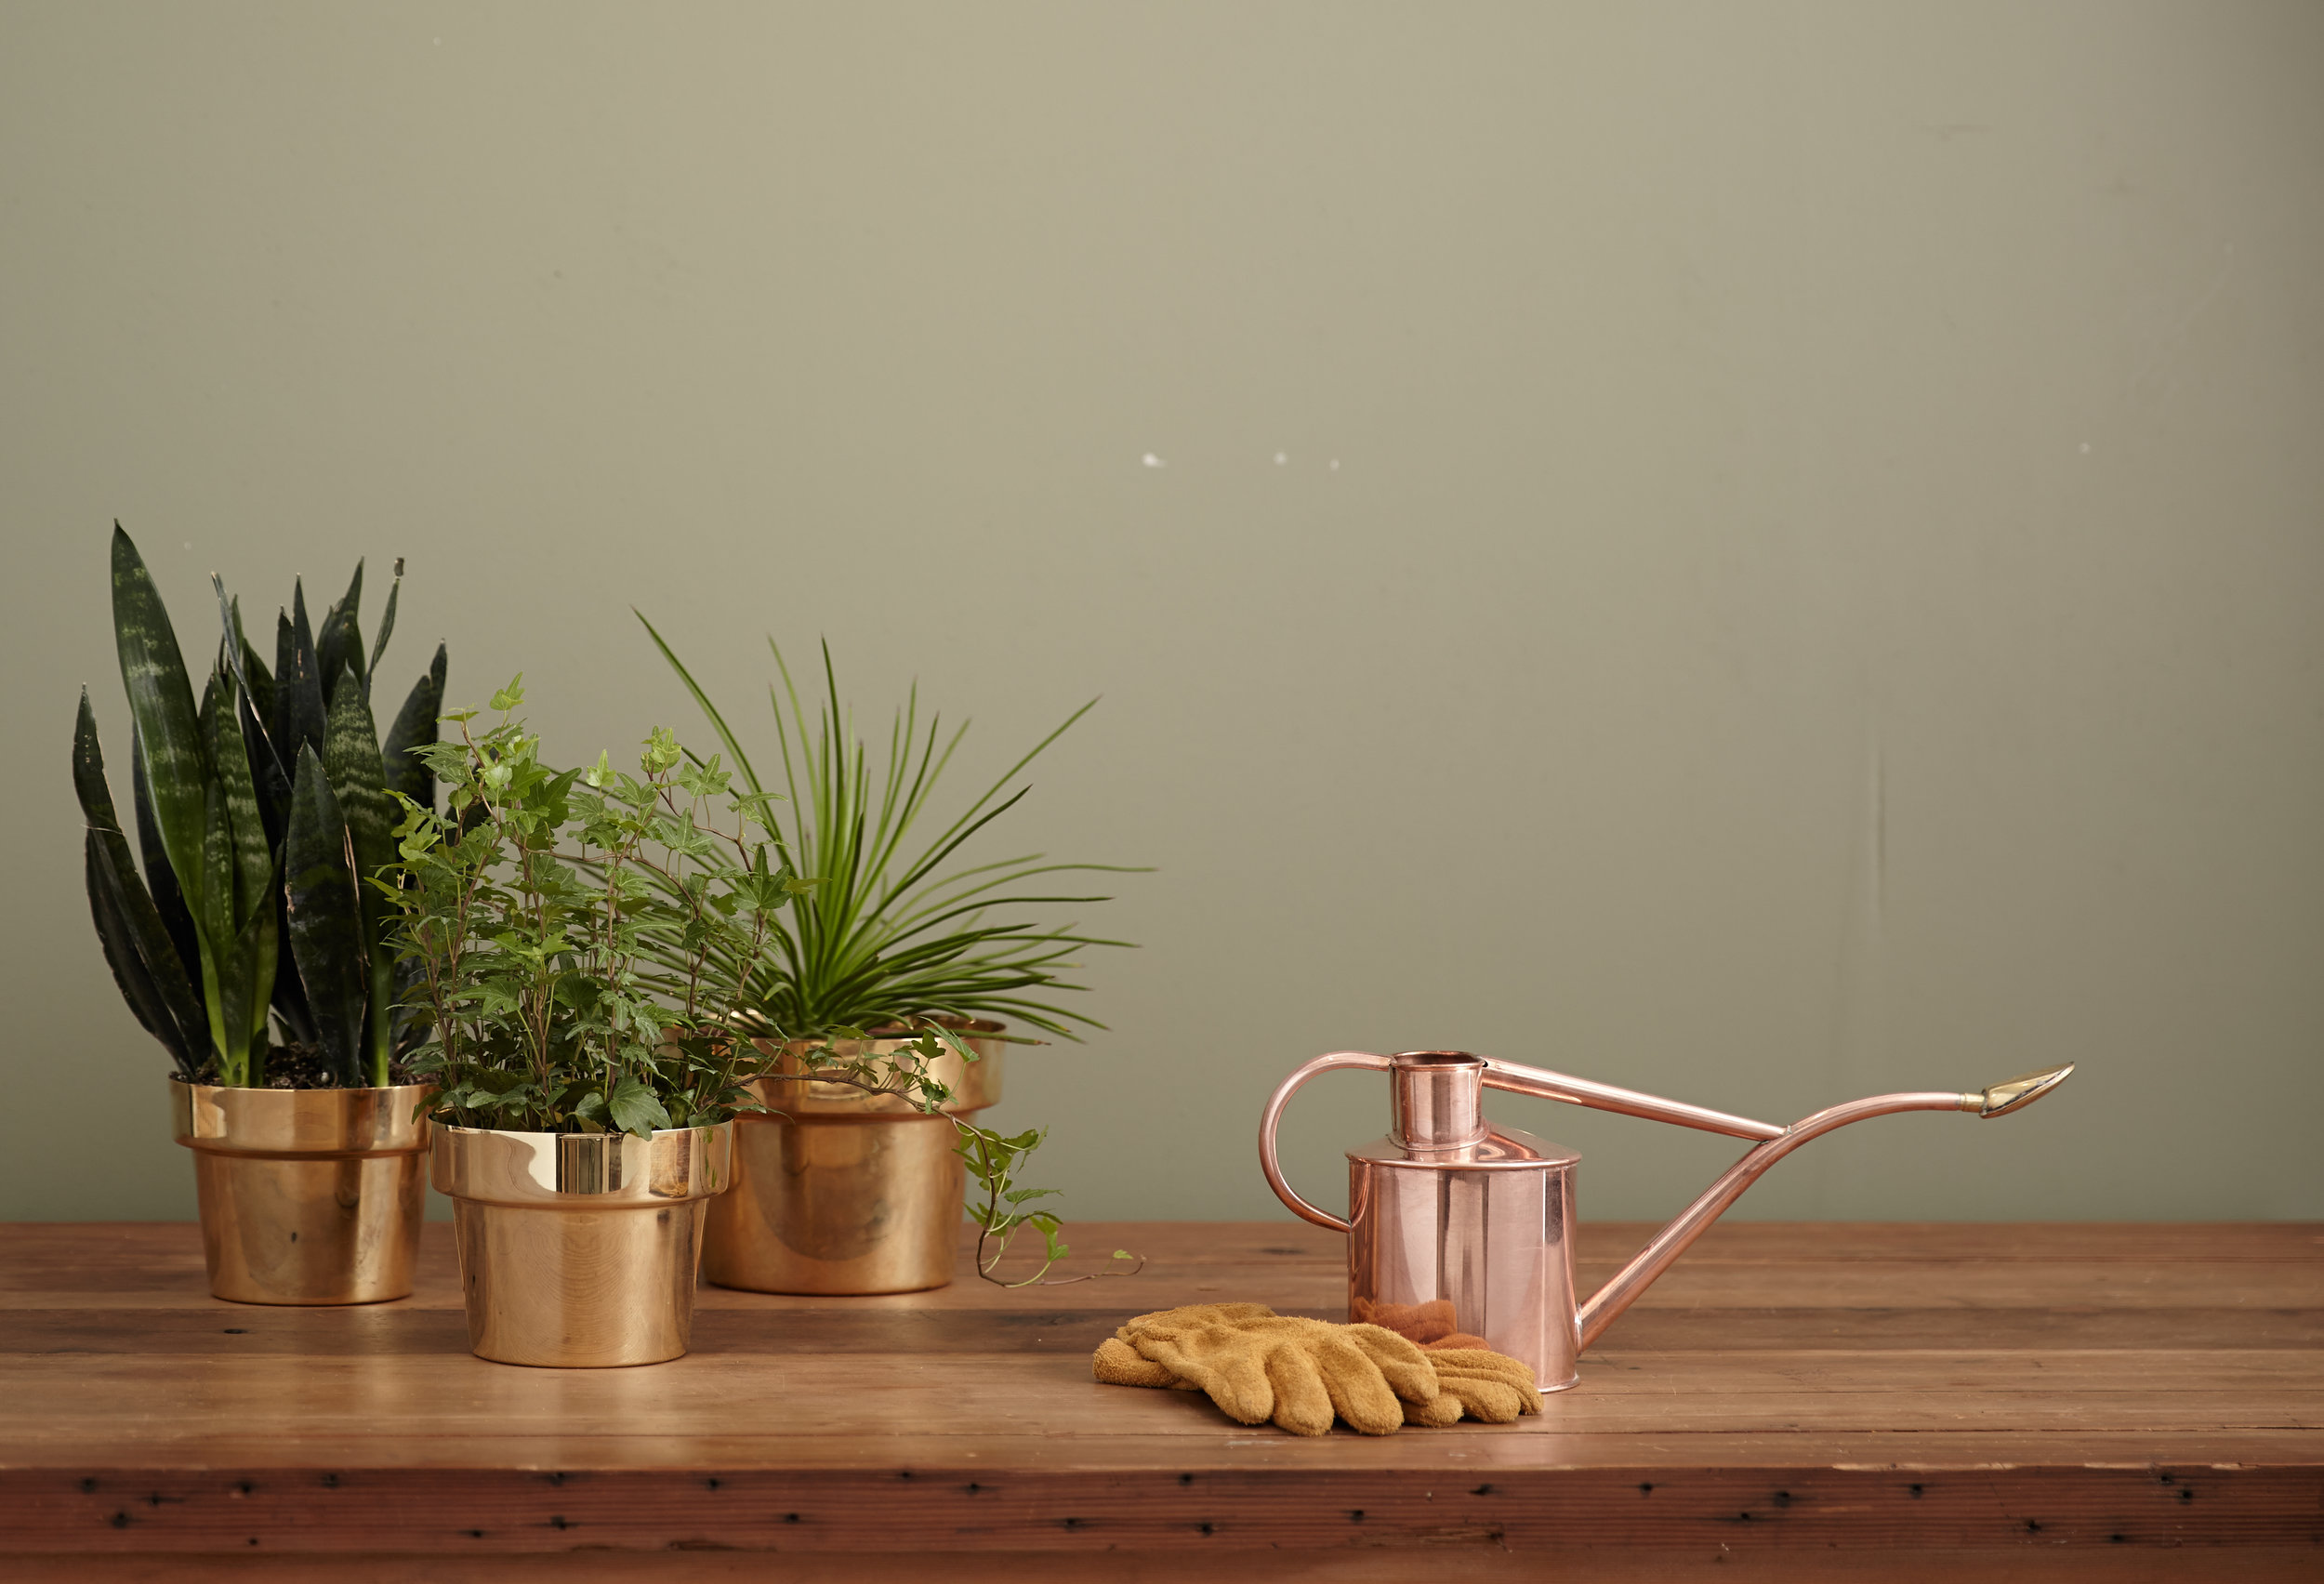 Watering can and potted plants